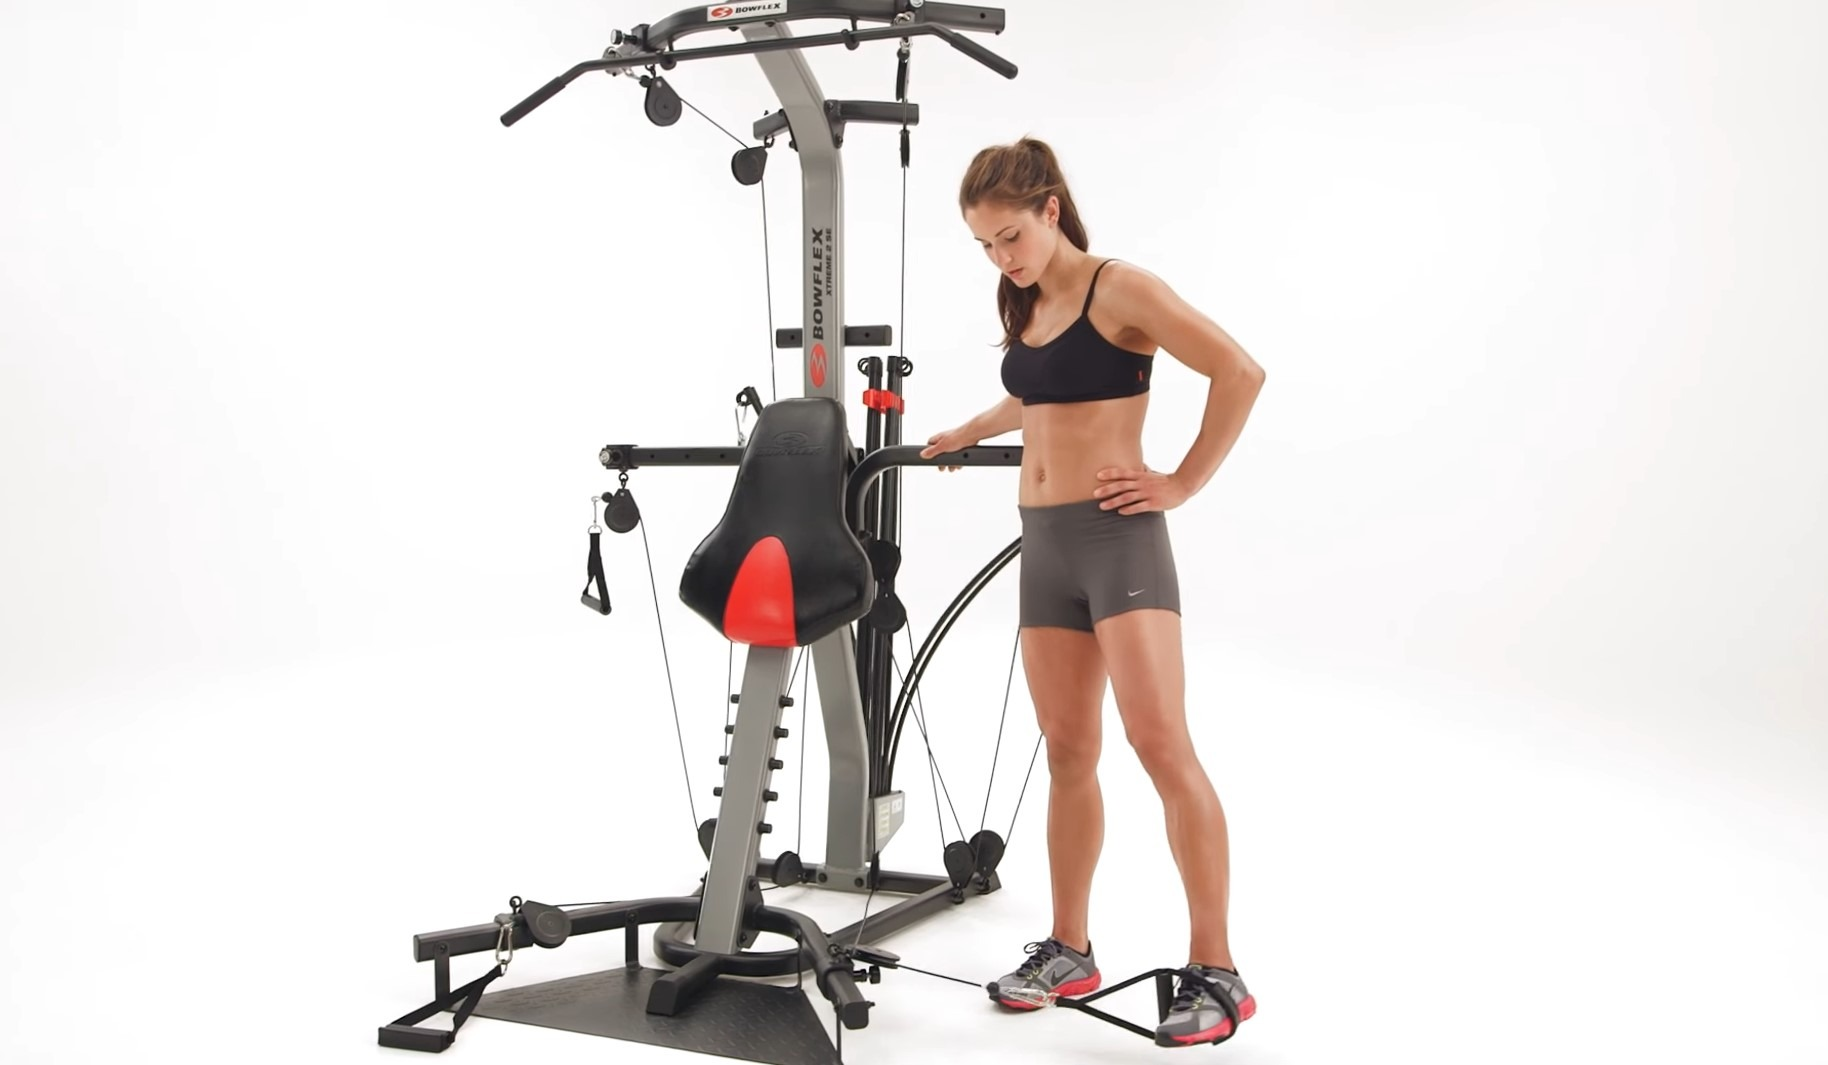 Best Bowflex Machines for Your Home